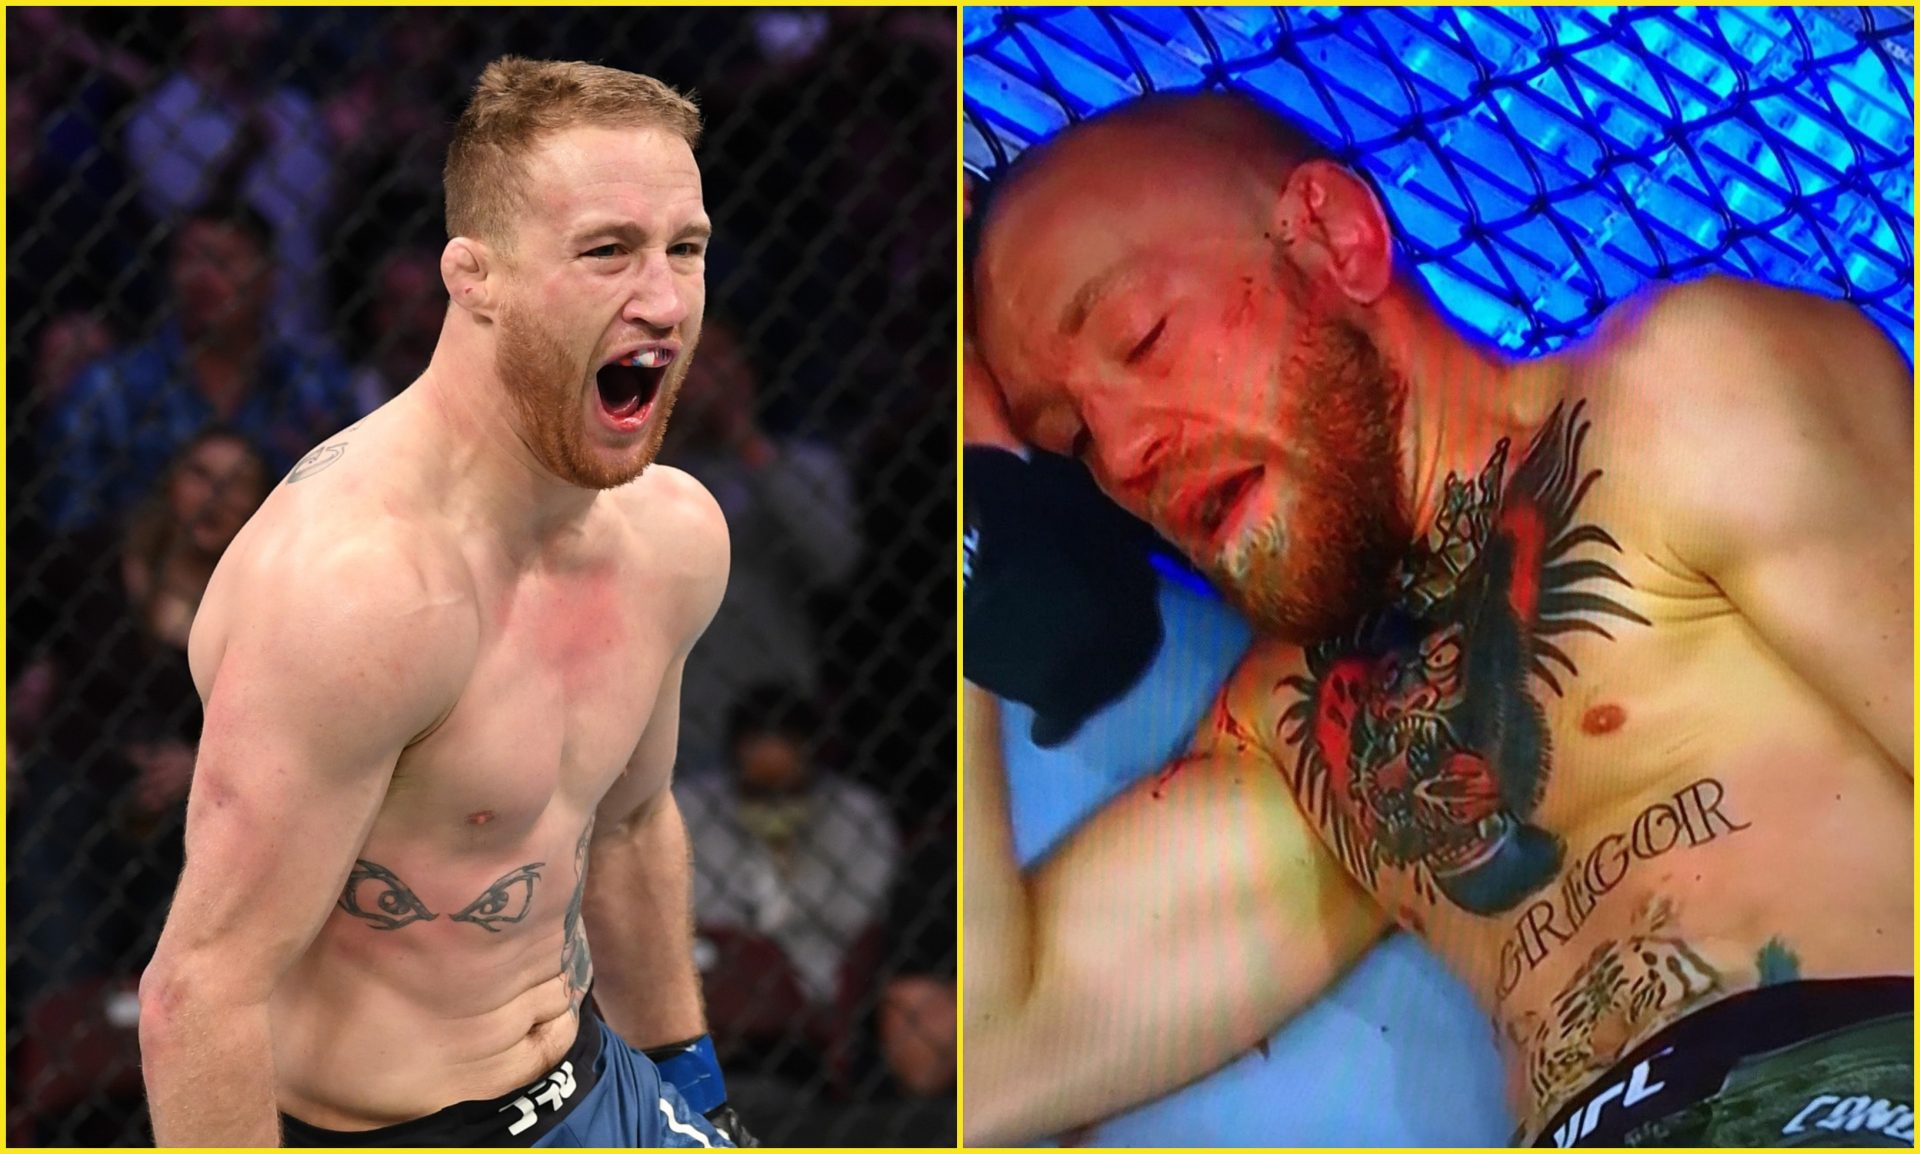 Justin Gaethje loved seeing Conor McGregor get knocked out by Dustin Poirier - Justin Gaethje